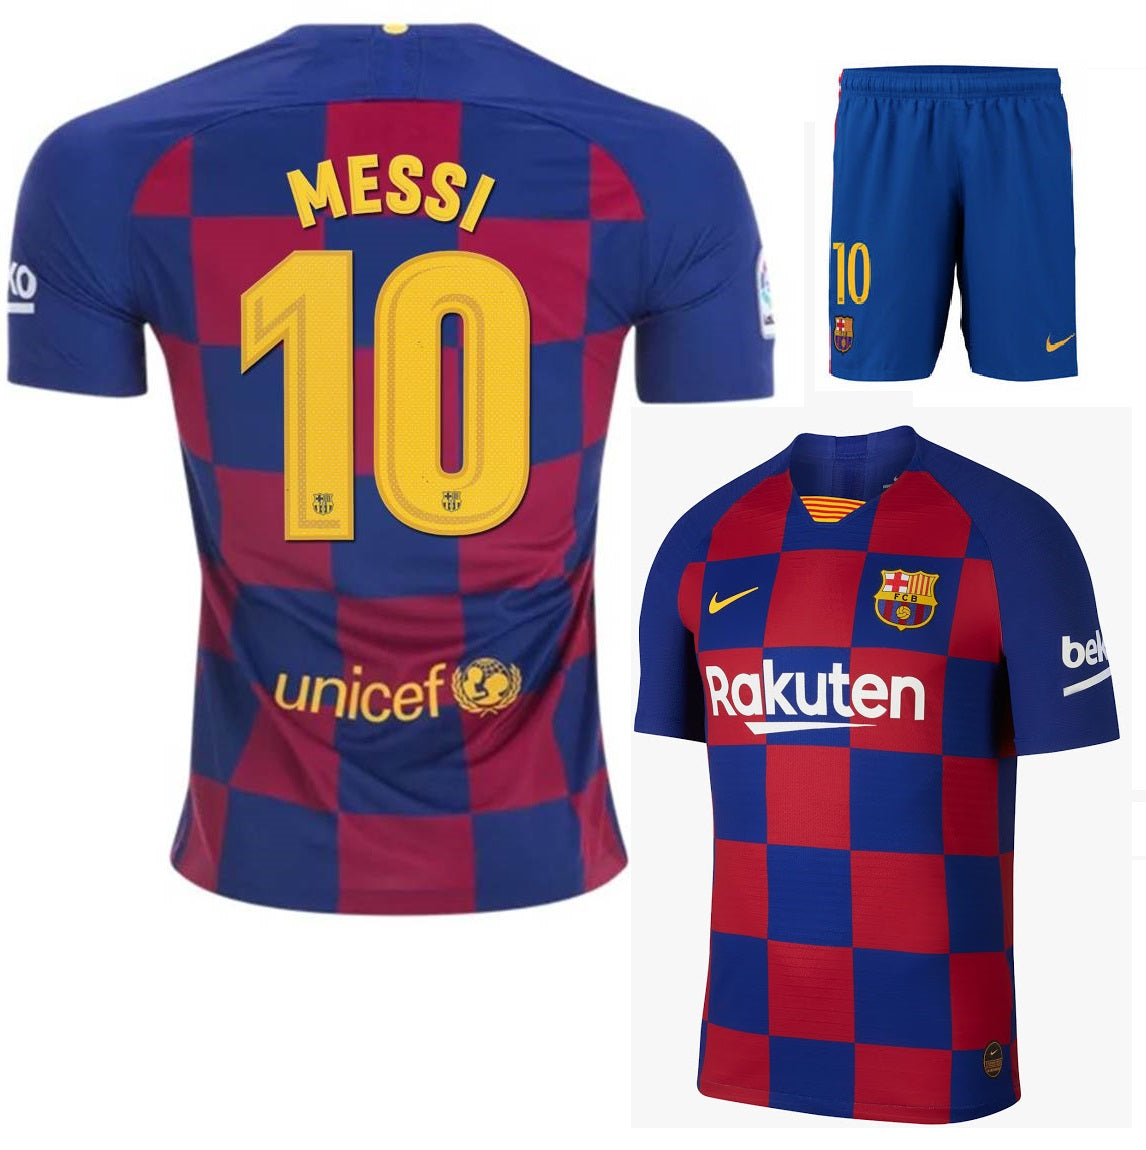 the latest 366ef 0b169 Original Messi Barcelona Premium Home Jersey & Shorts [Optional] 2019/20